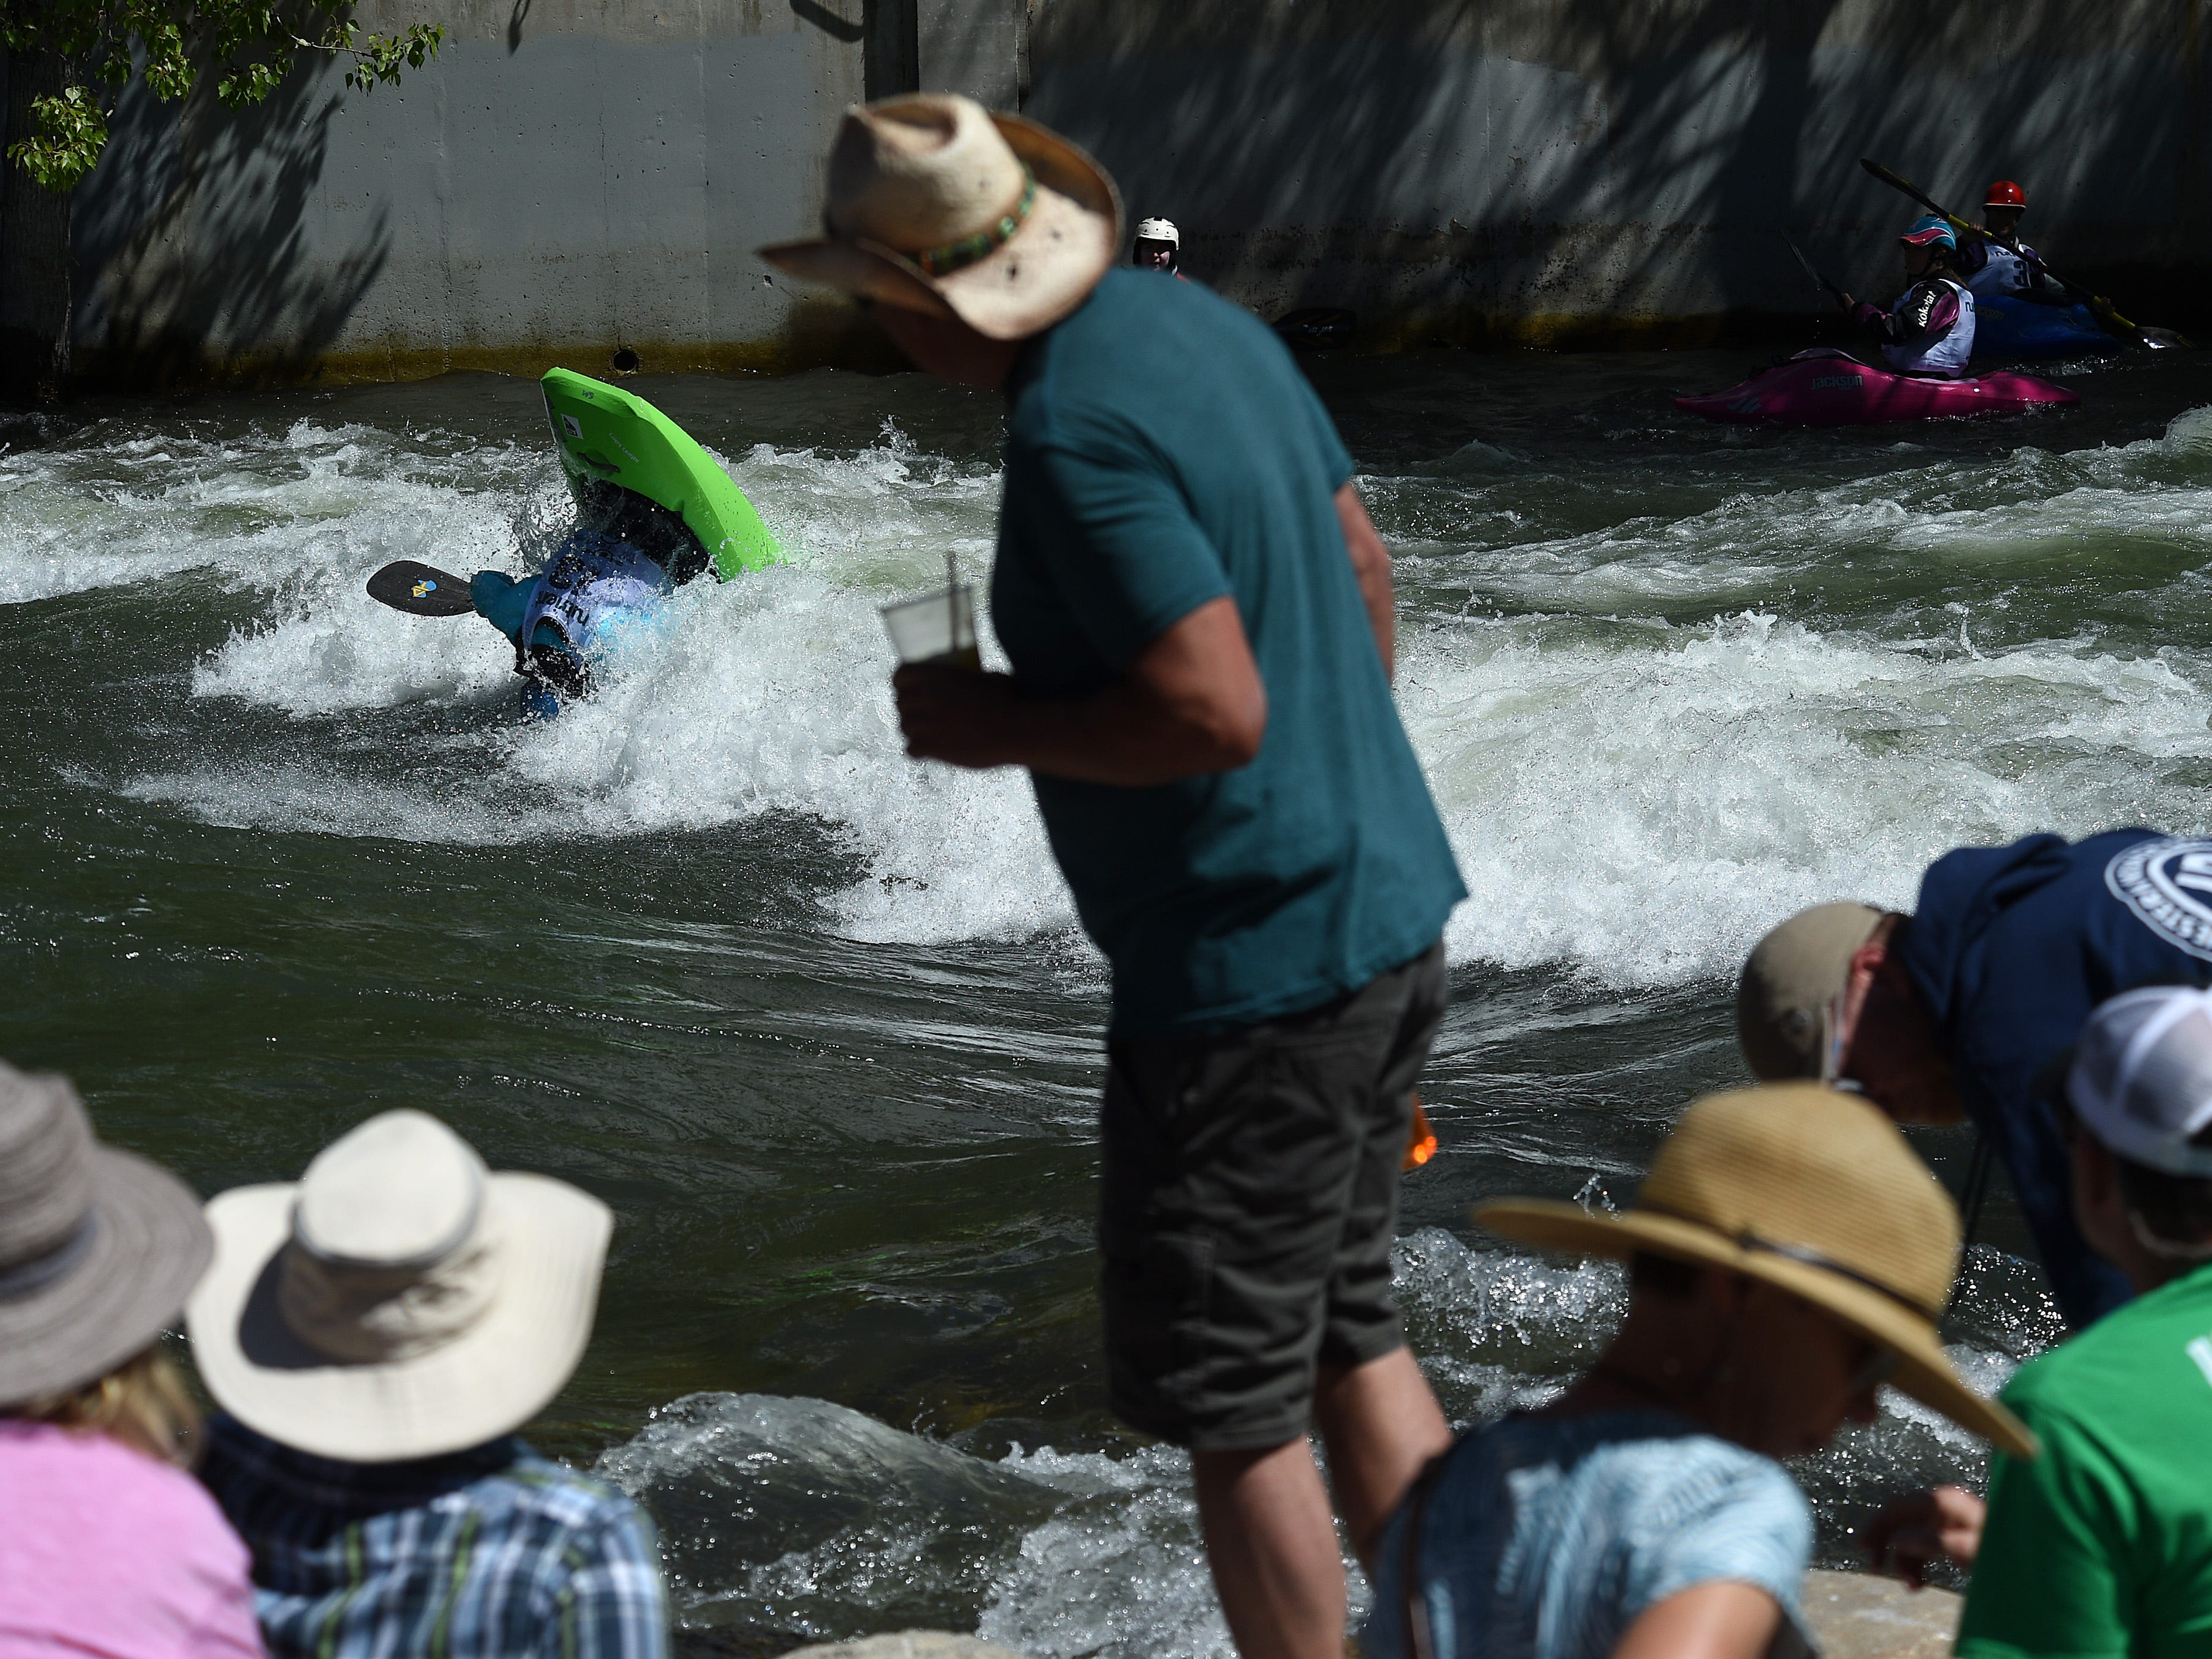 Spectators take in the action during the Reno River Festival on the Truckee River in Wingfield Park on May 11, 2019.